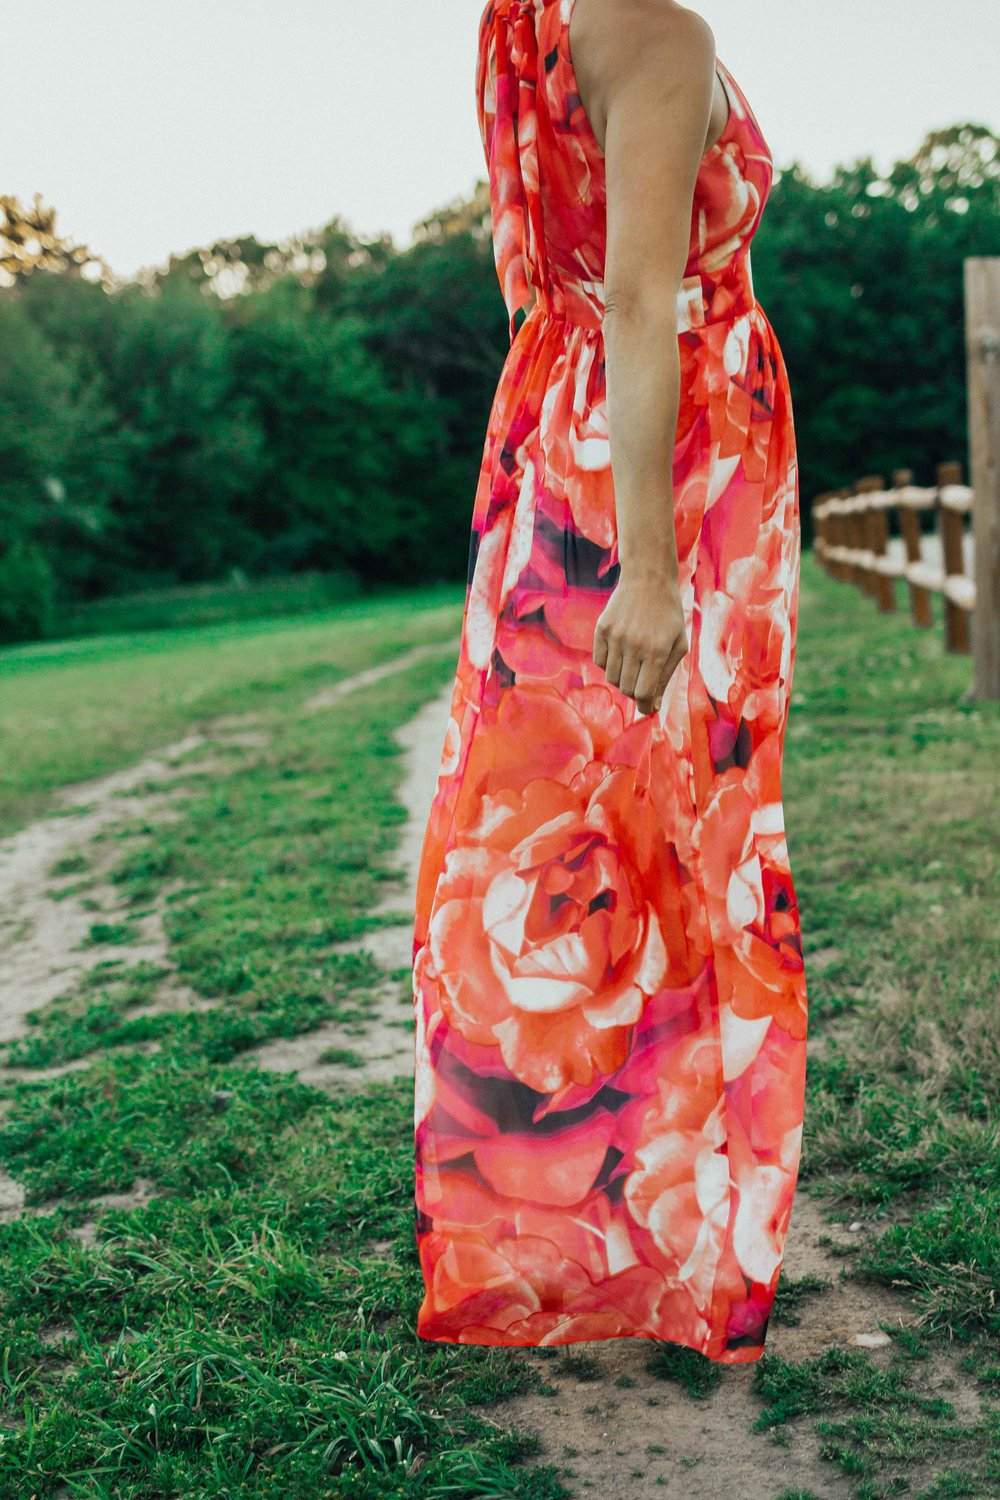 Floral Maxi Dress - Floral Maxi Dress Outfit - Eliza J Dresses - Eliza J Maxi Dress - Maxi Dresses for Summer - Maxi Dresses for Summer Weddings - #heartandseam #elizaj #maxidress  www.heartandseam.com